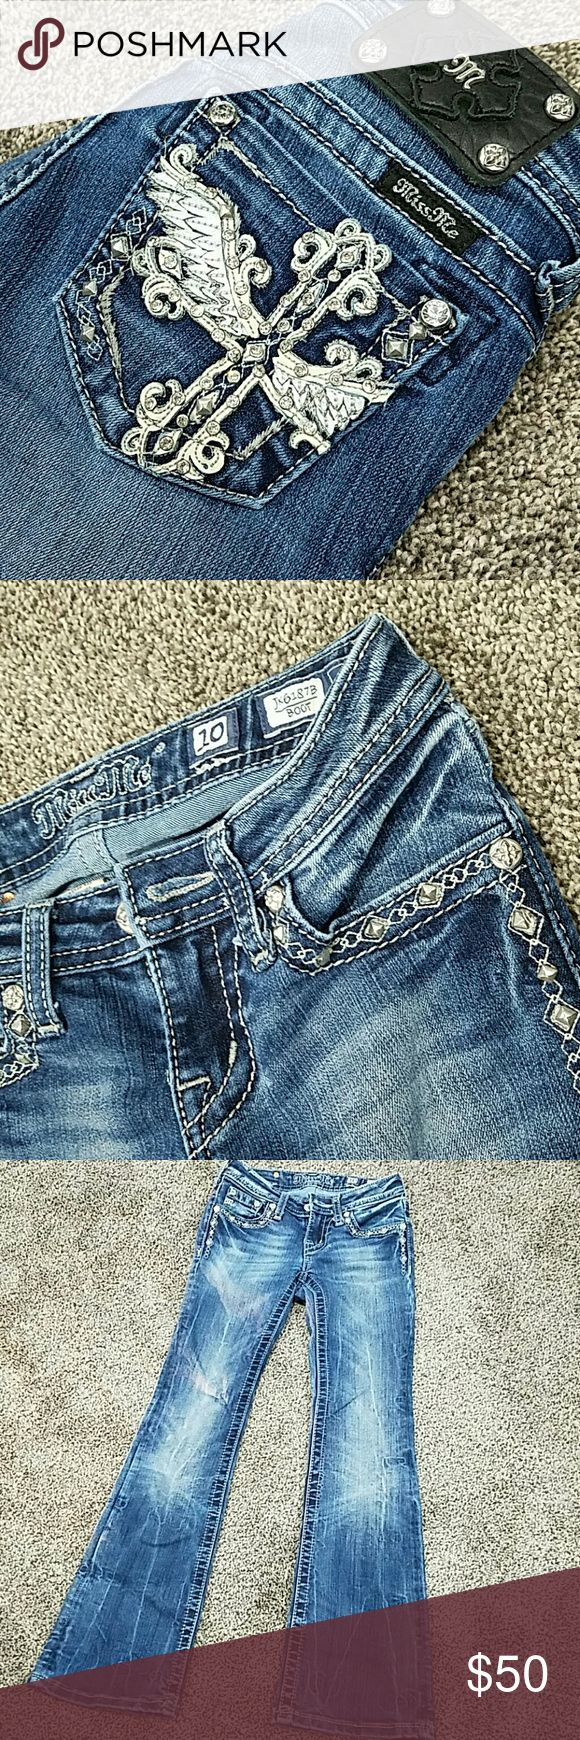 Girls Miss Me Jeans Size 10 Girls Miss Me jeans. Pocket detailing on the front and back. Size 10, excellent condition. Miss Me Bottoms Jeans